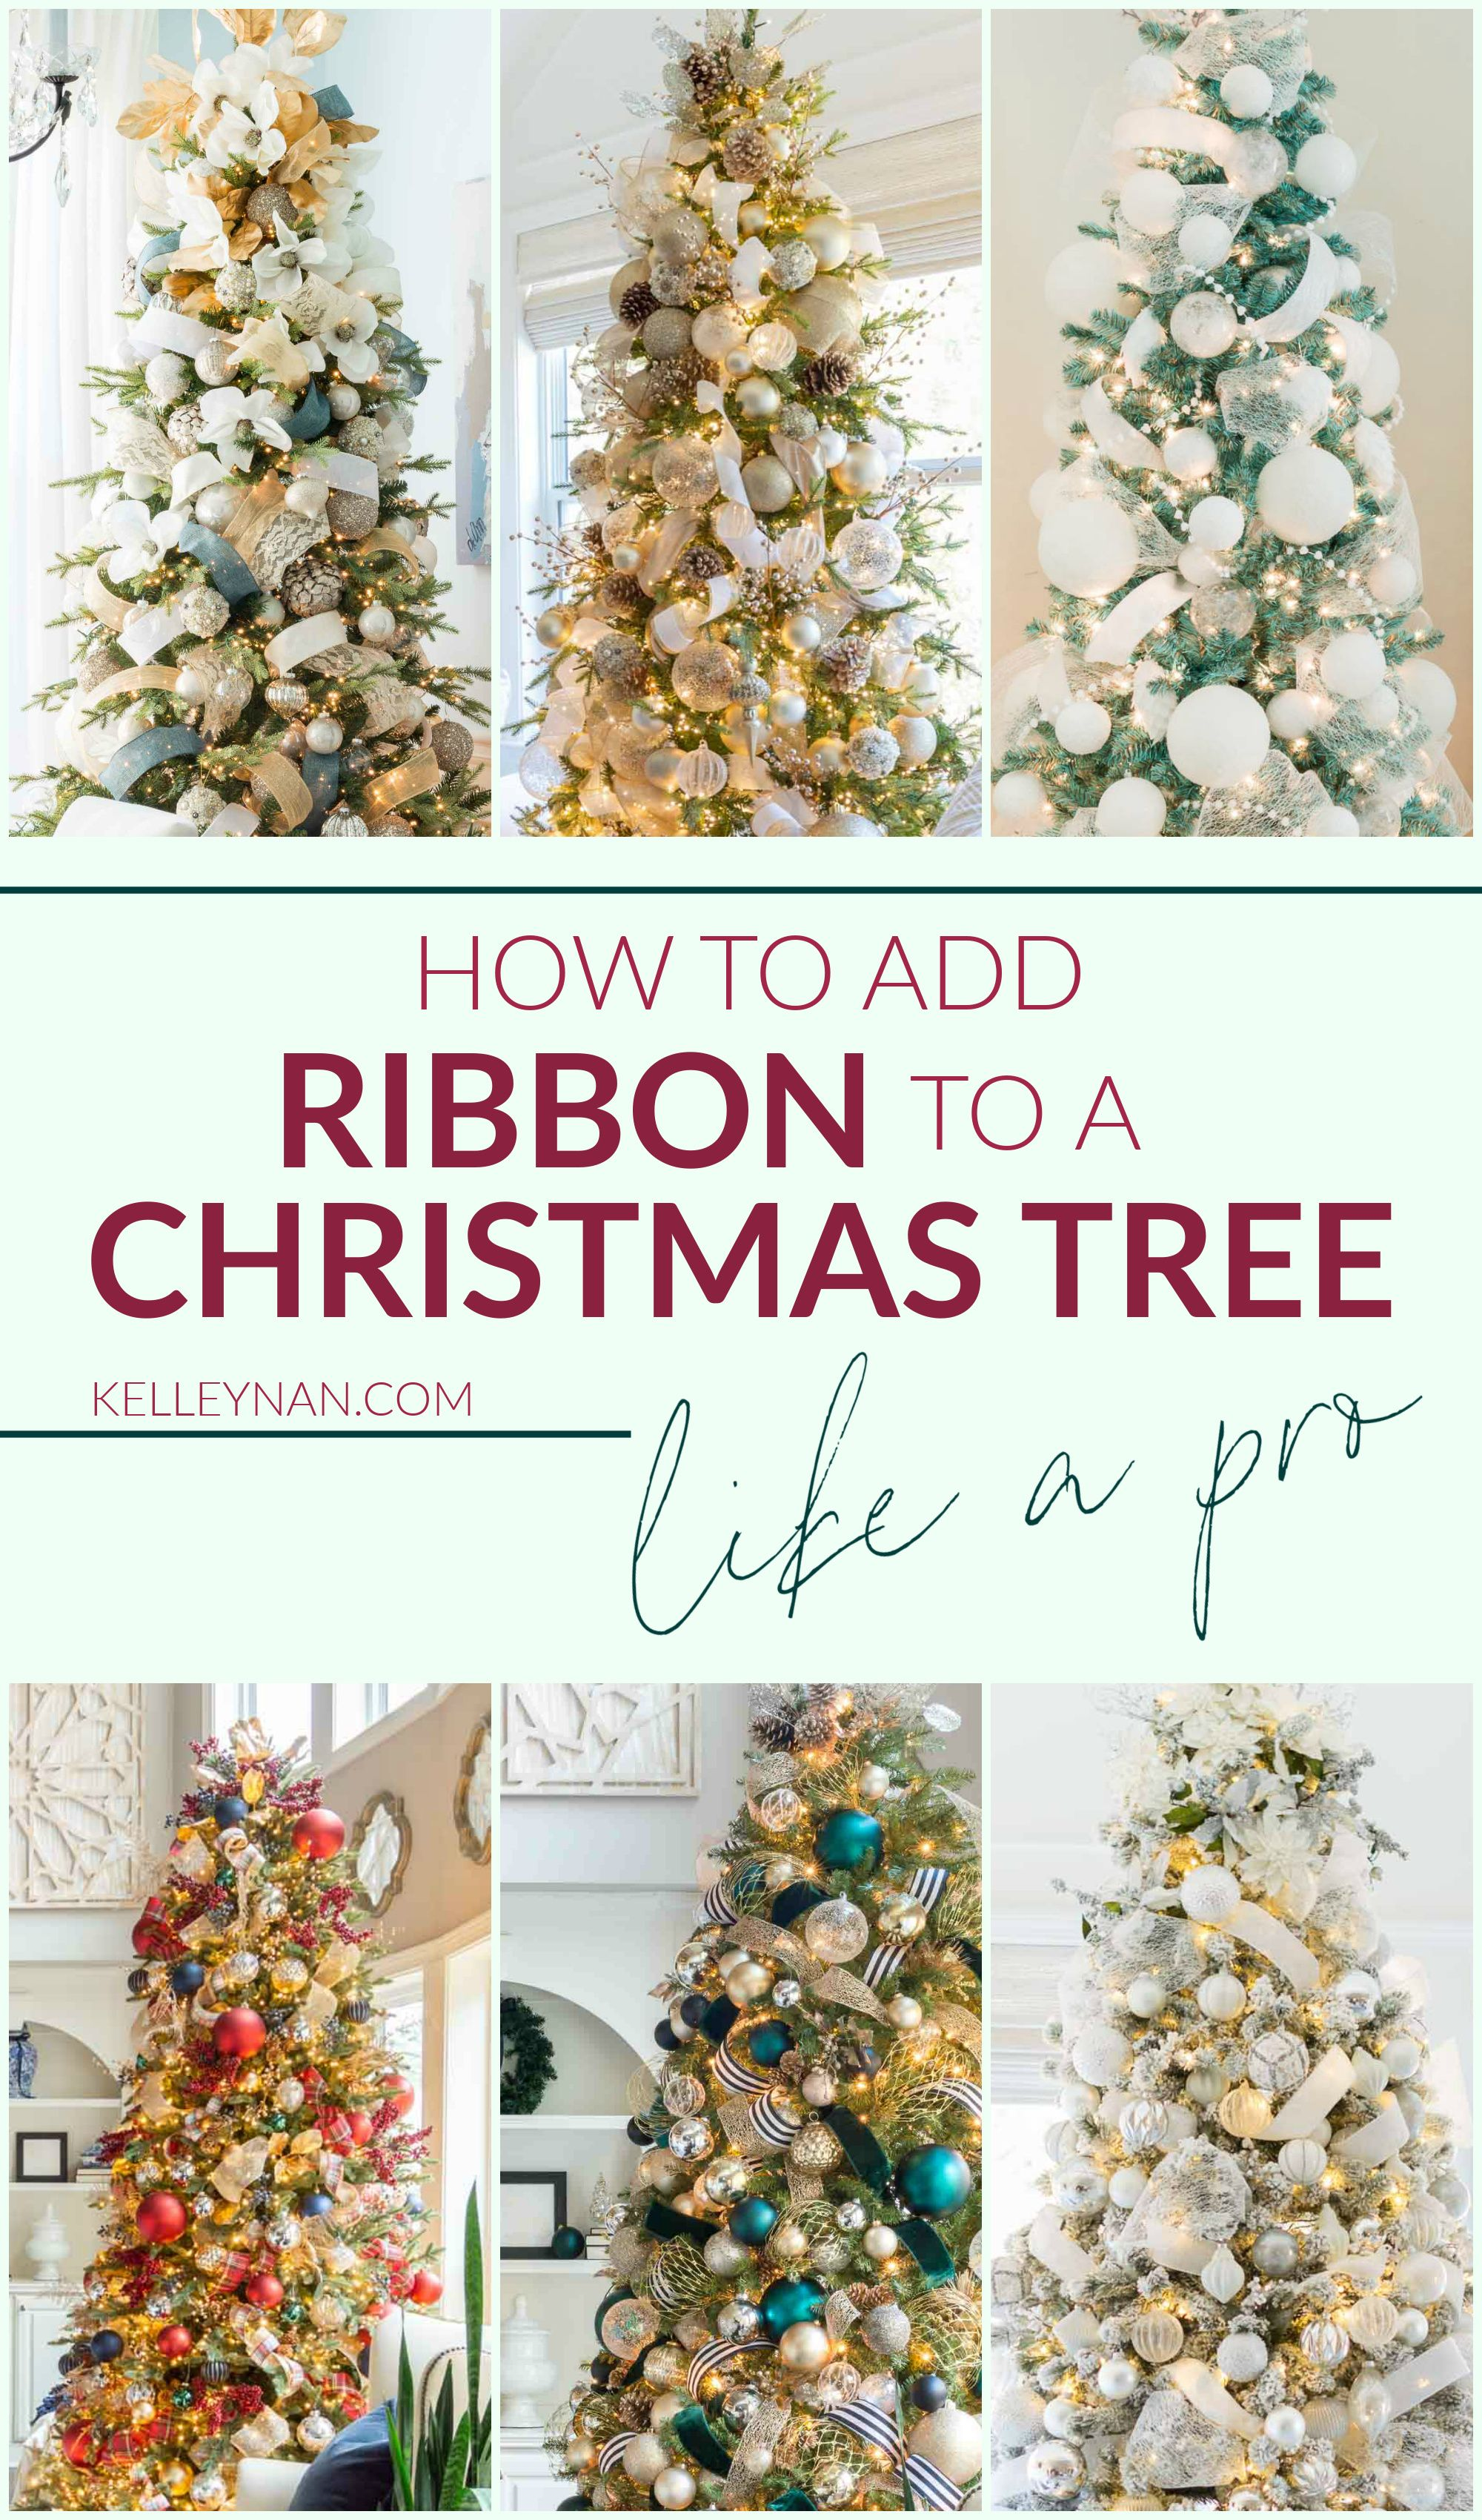 How To Decorate A Christmas Tree With Ribbon Kelley Nan In 2020 Ribbon On Christmas Tree Cool Christmas Trees Christmas Tree Design